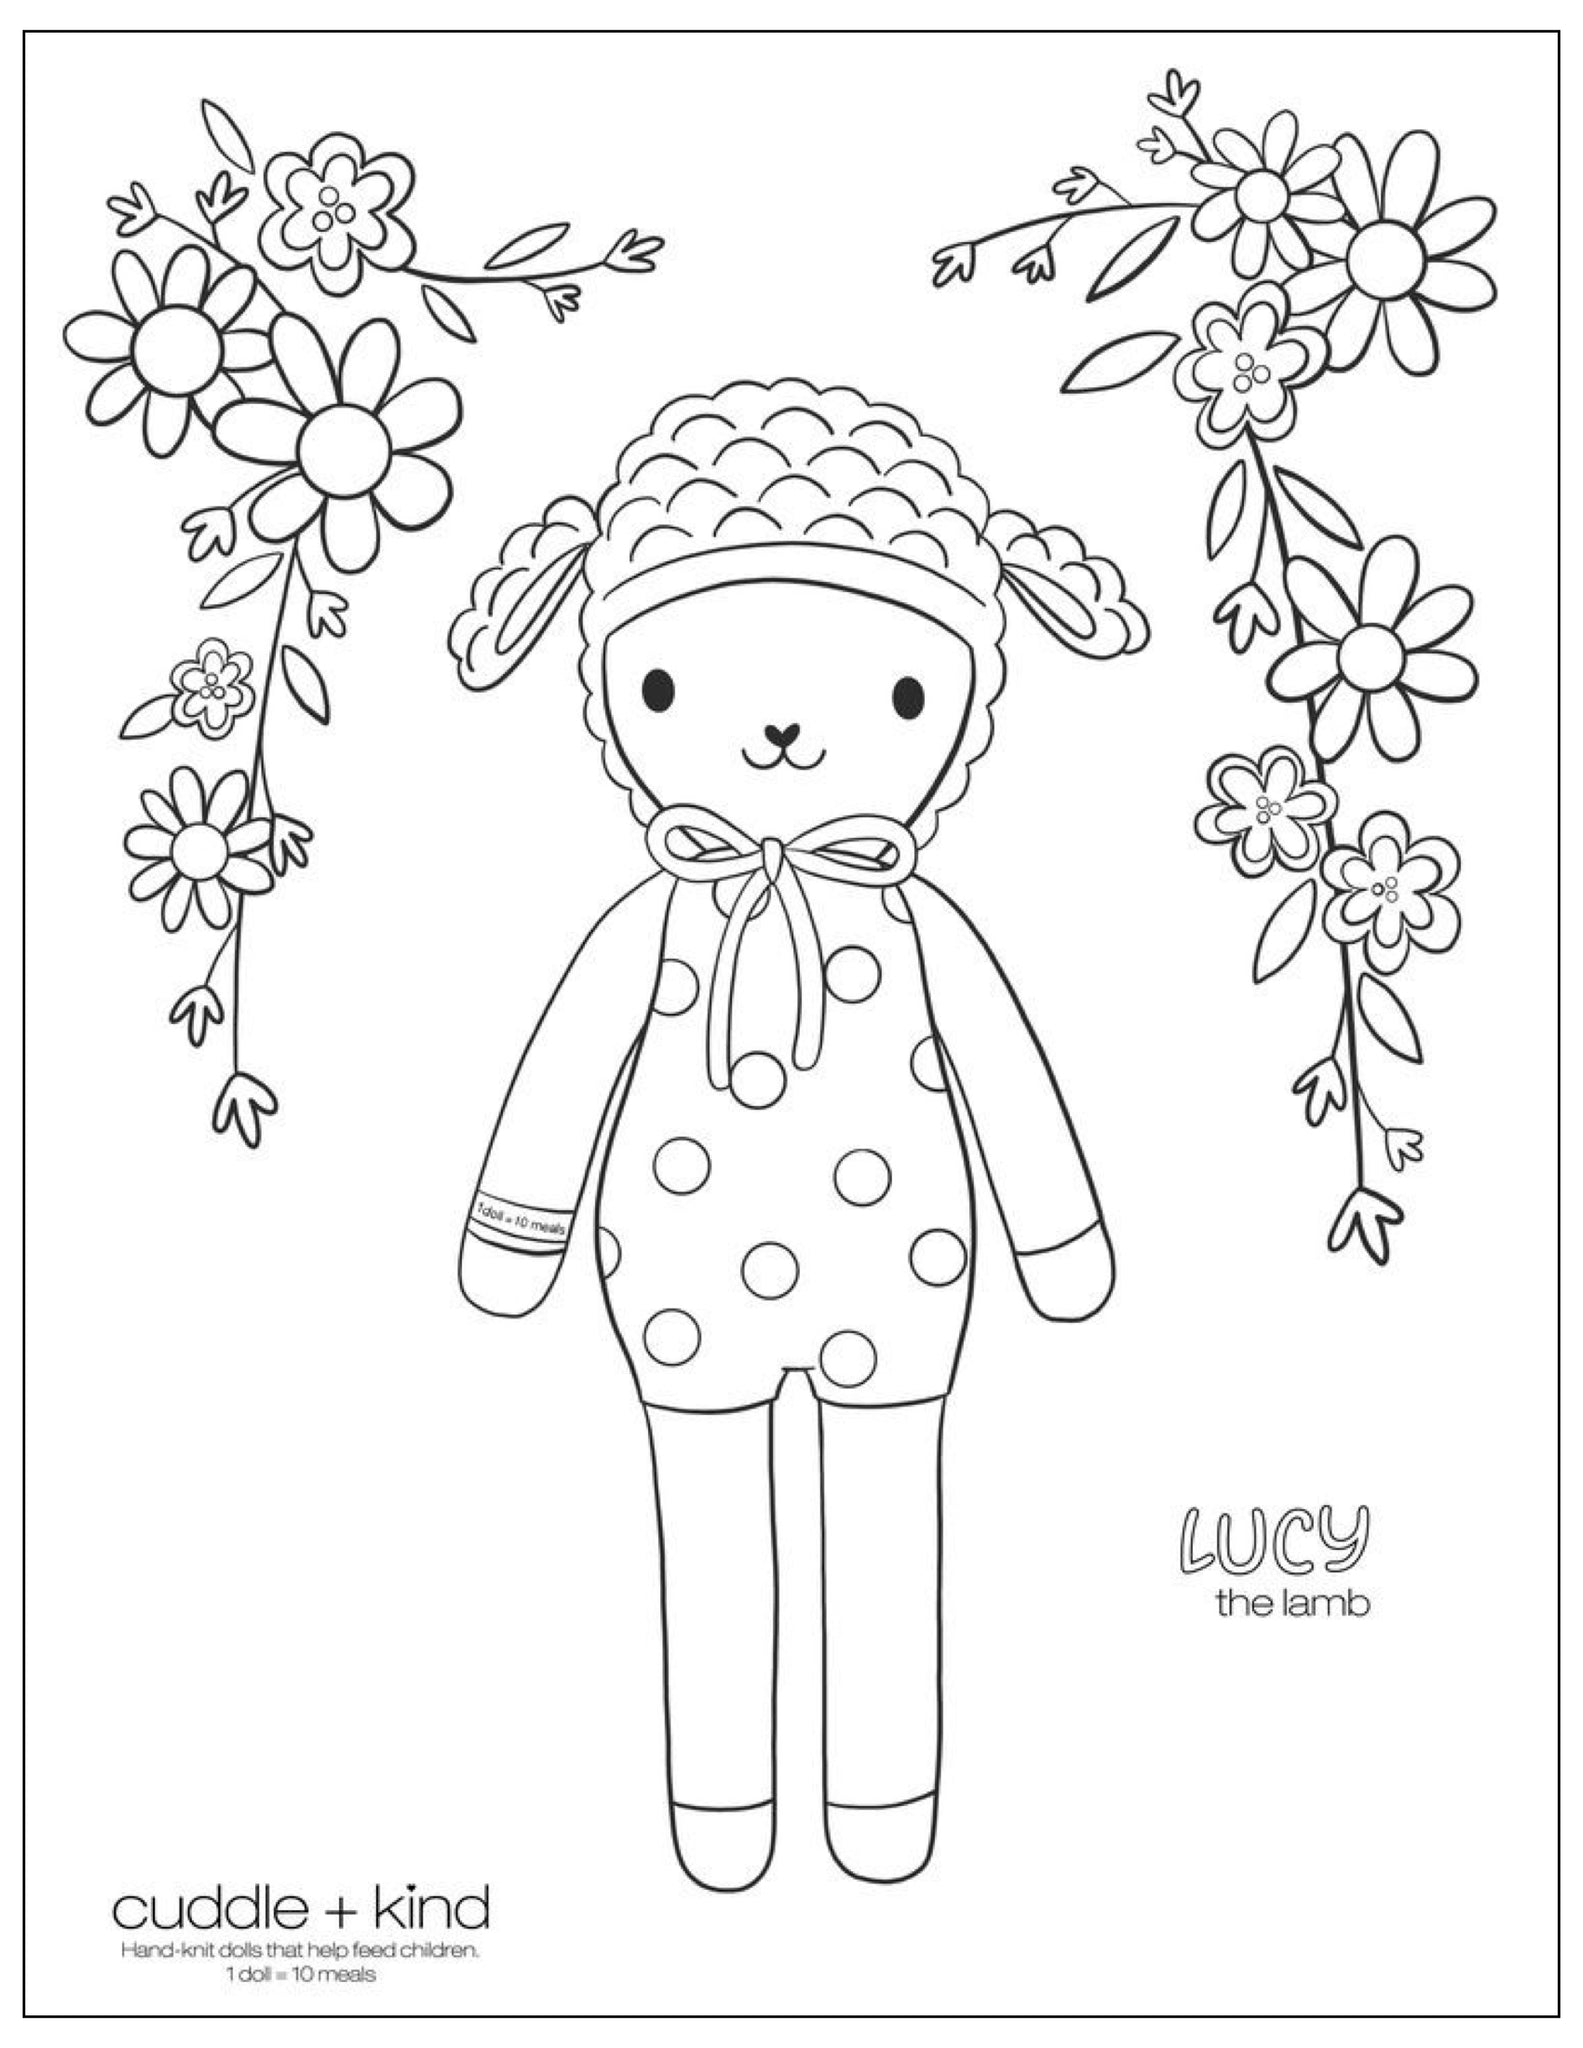 cuddle and kind lucy coloring page